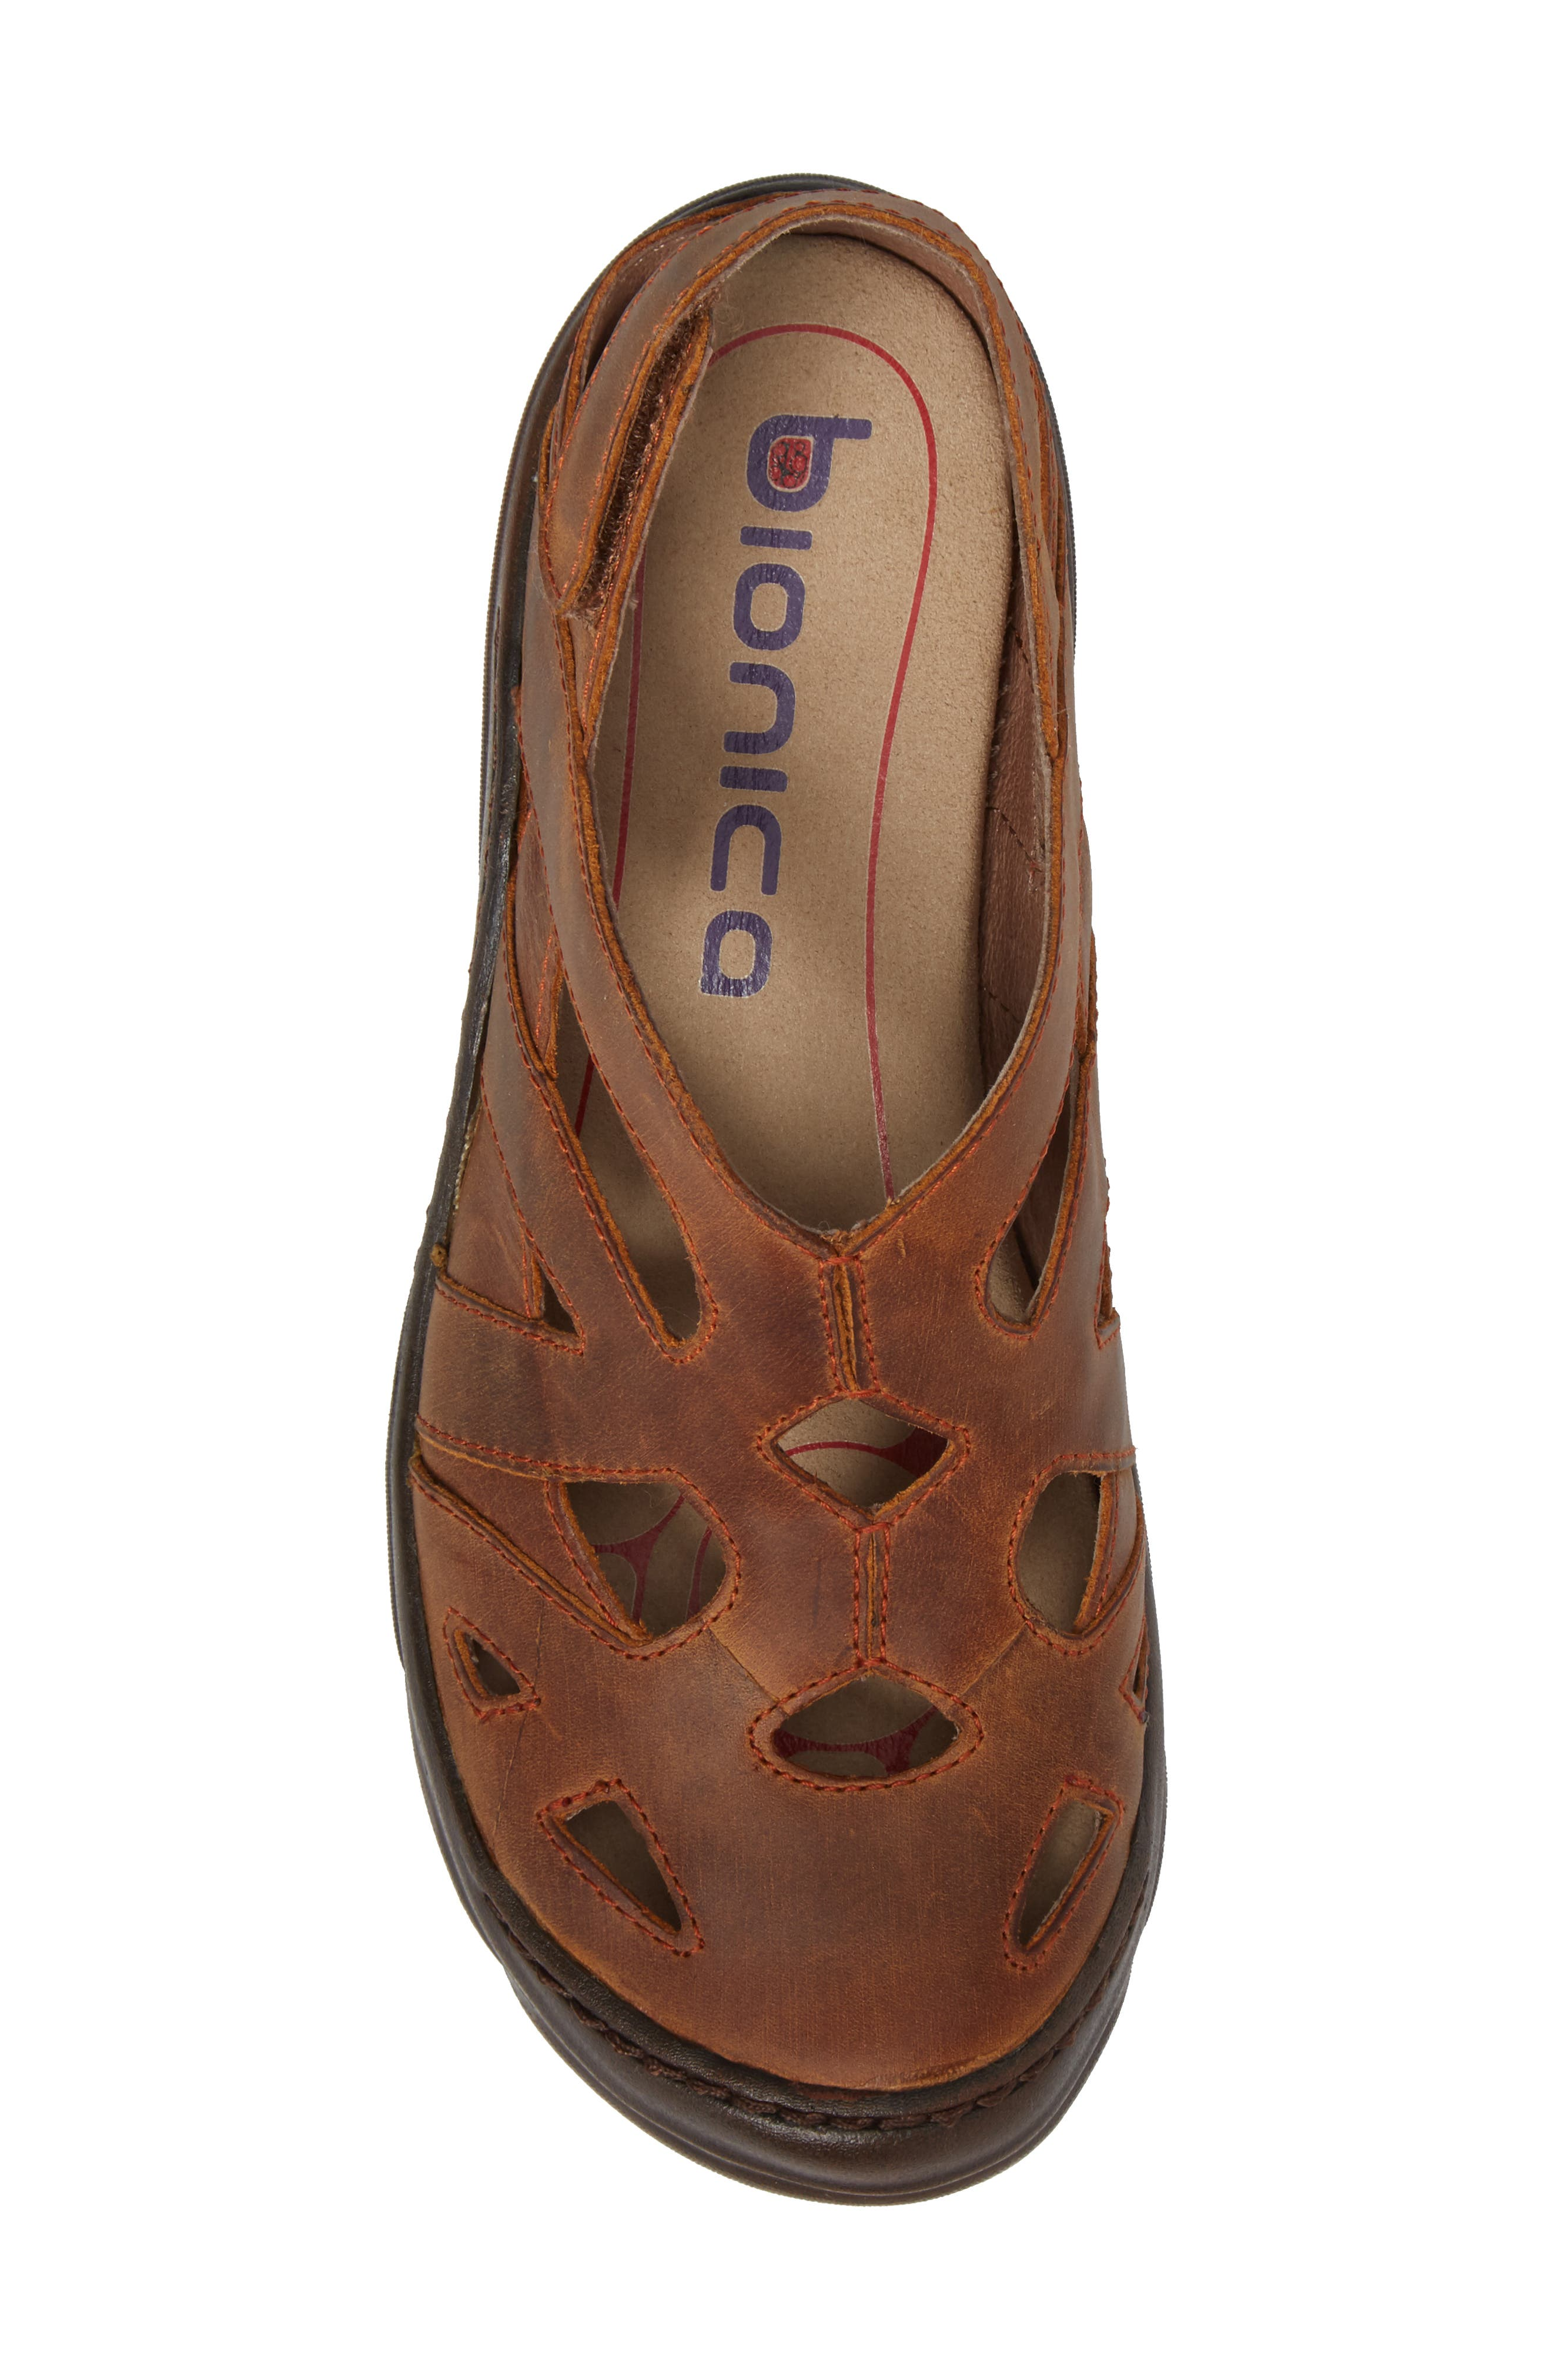 BIONICA,                             Maclean Sandal,                             Alternate thumbnail 5, color,                             ALMOND TAN LEATHER